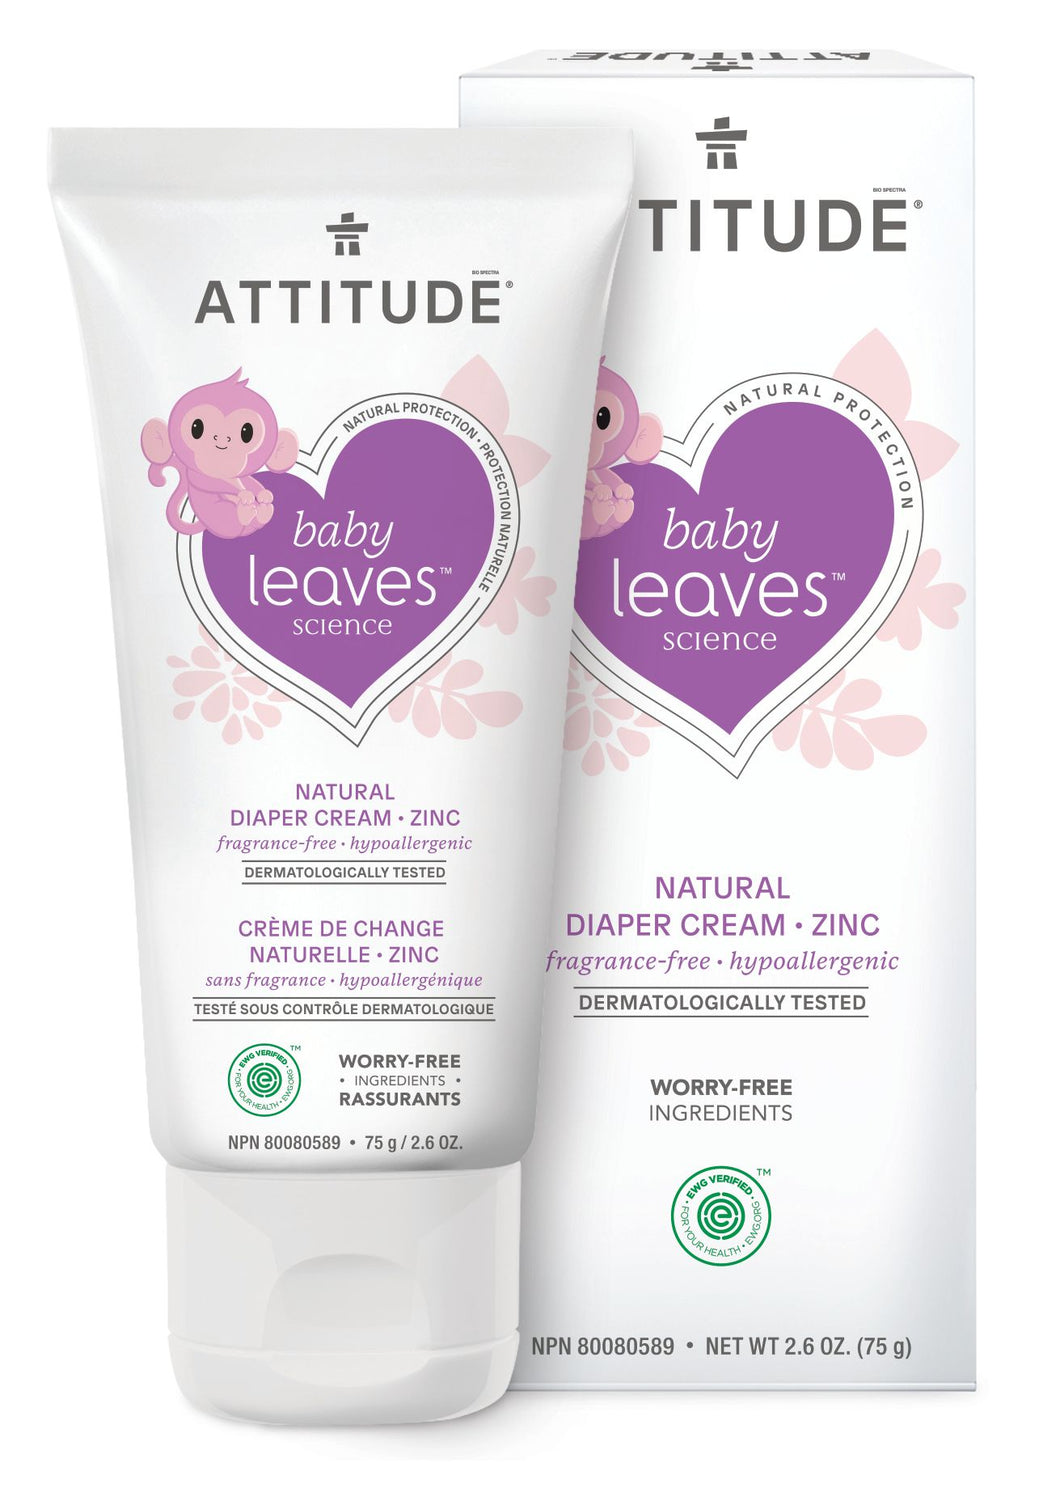 Attitude - Baby leaves billenzalf met zink